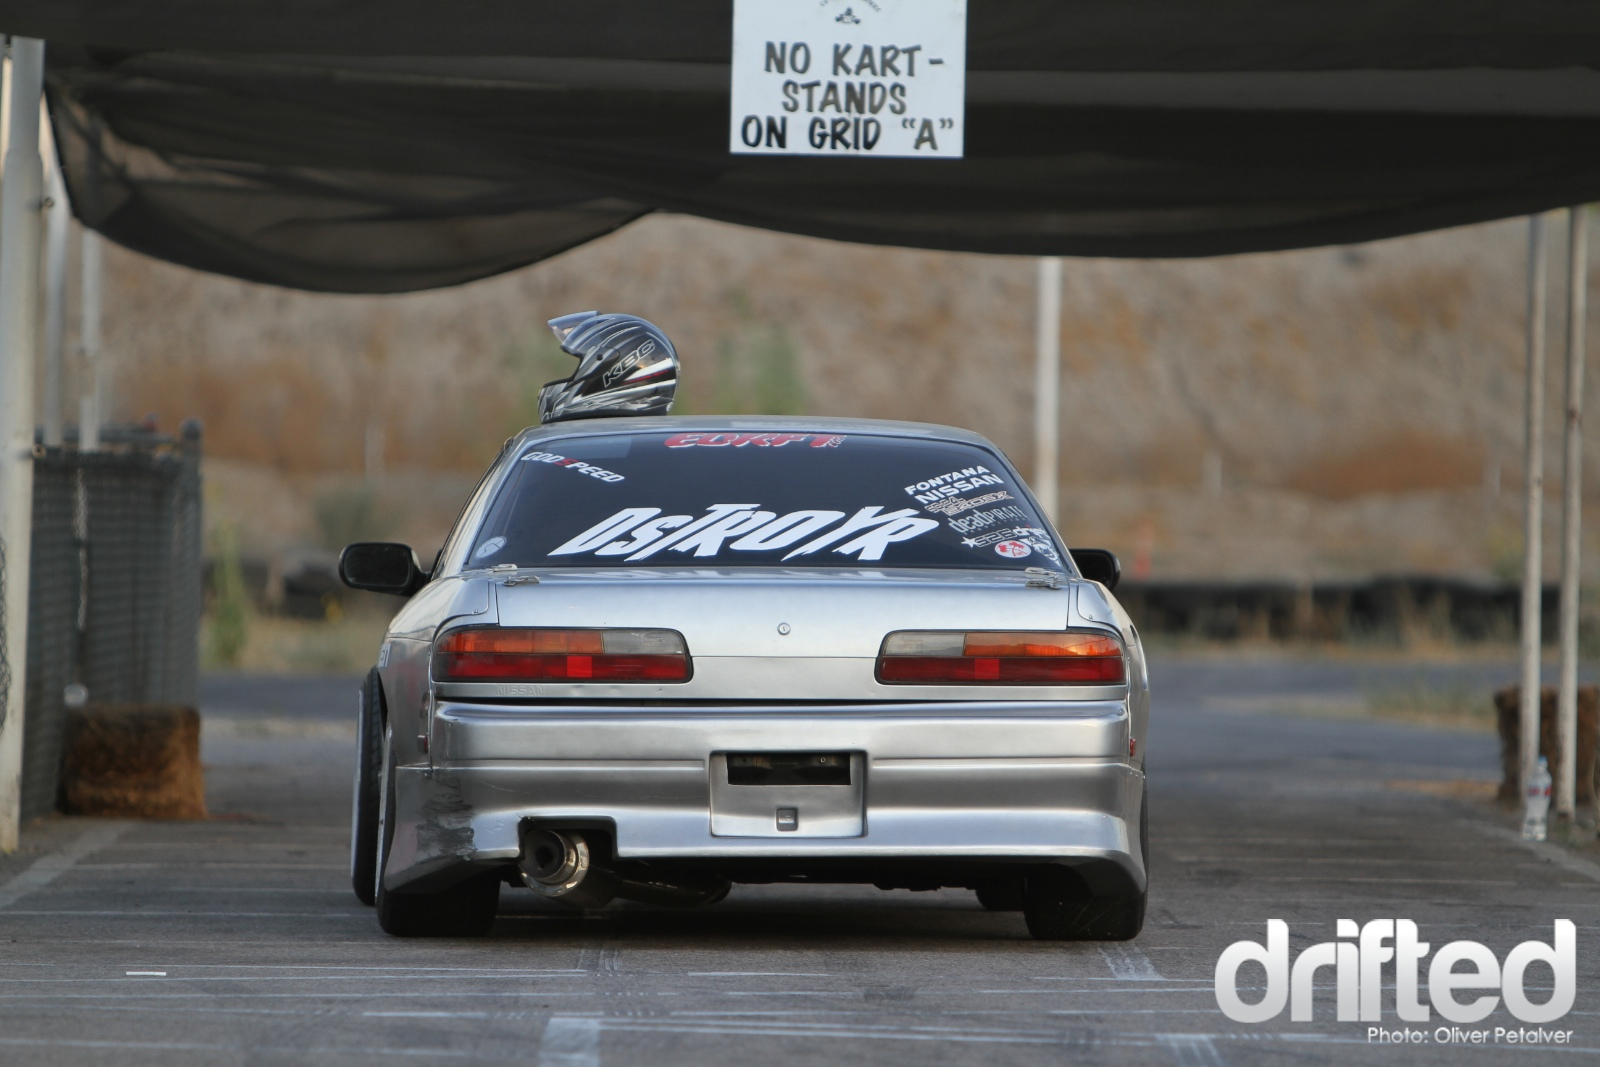 They hold weekly drift nights every Thursday from 6-9 p.m. Hundreds of ...